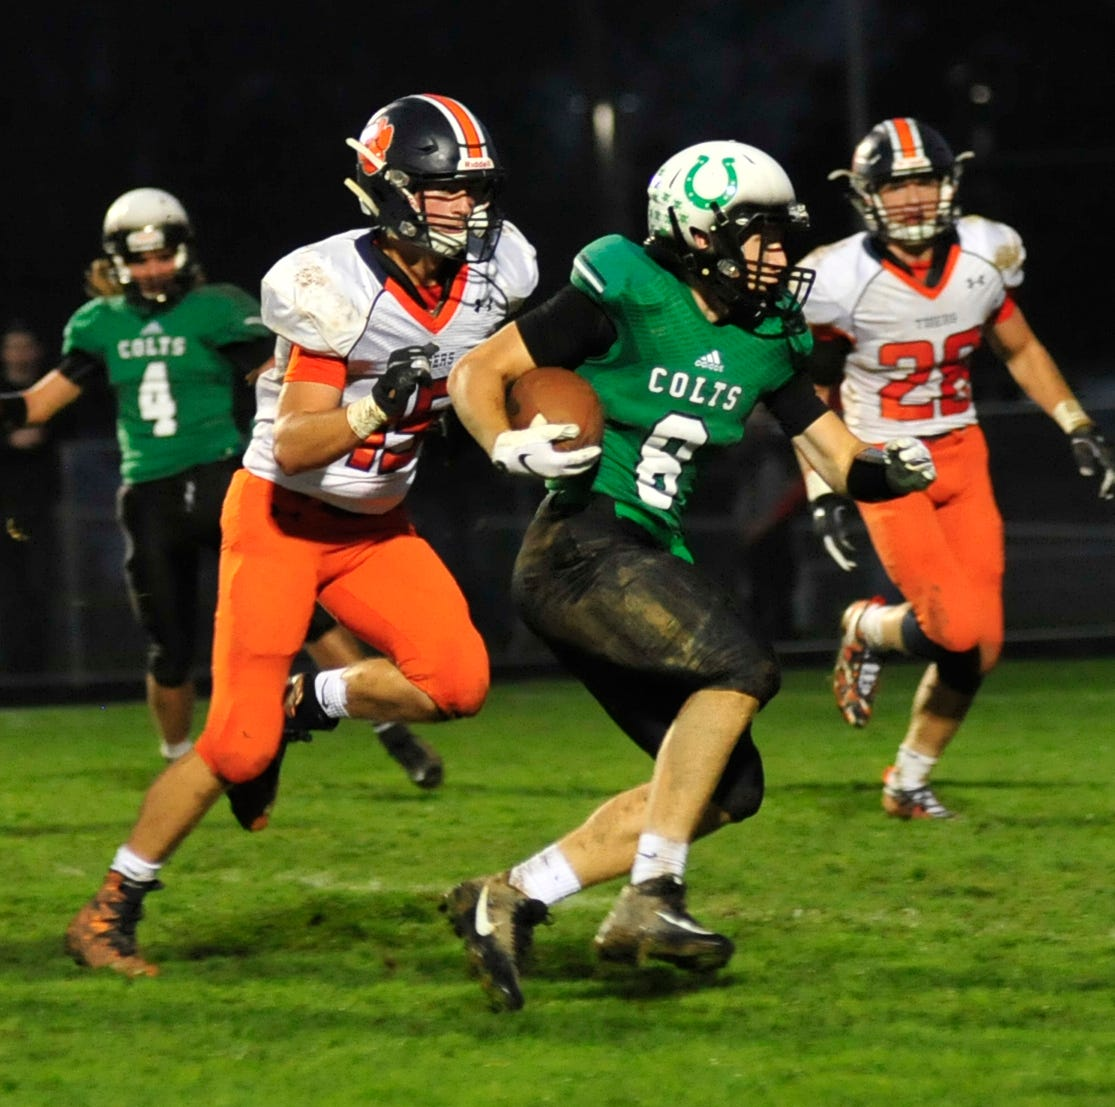 Clear Fork's Jared Schaefer runs with the ball while playing against Galion on Friday night.